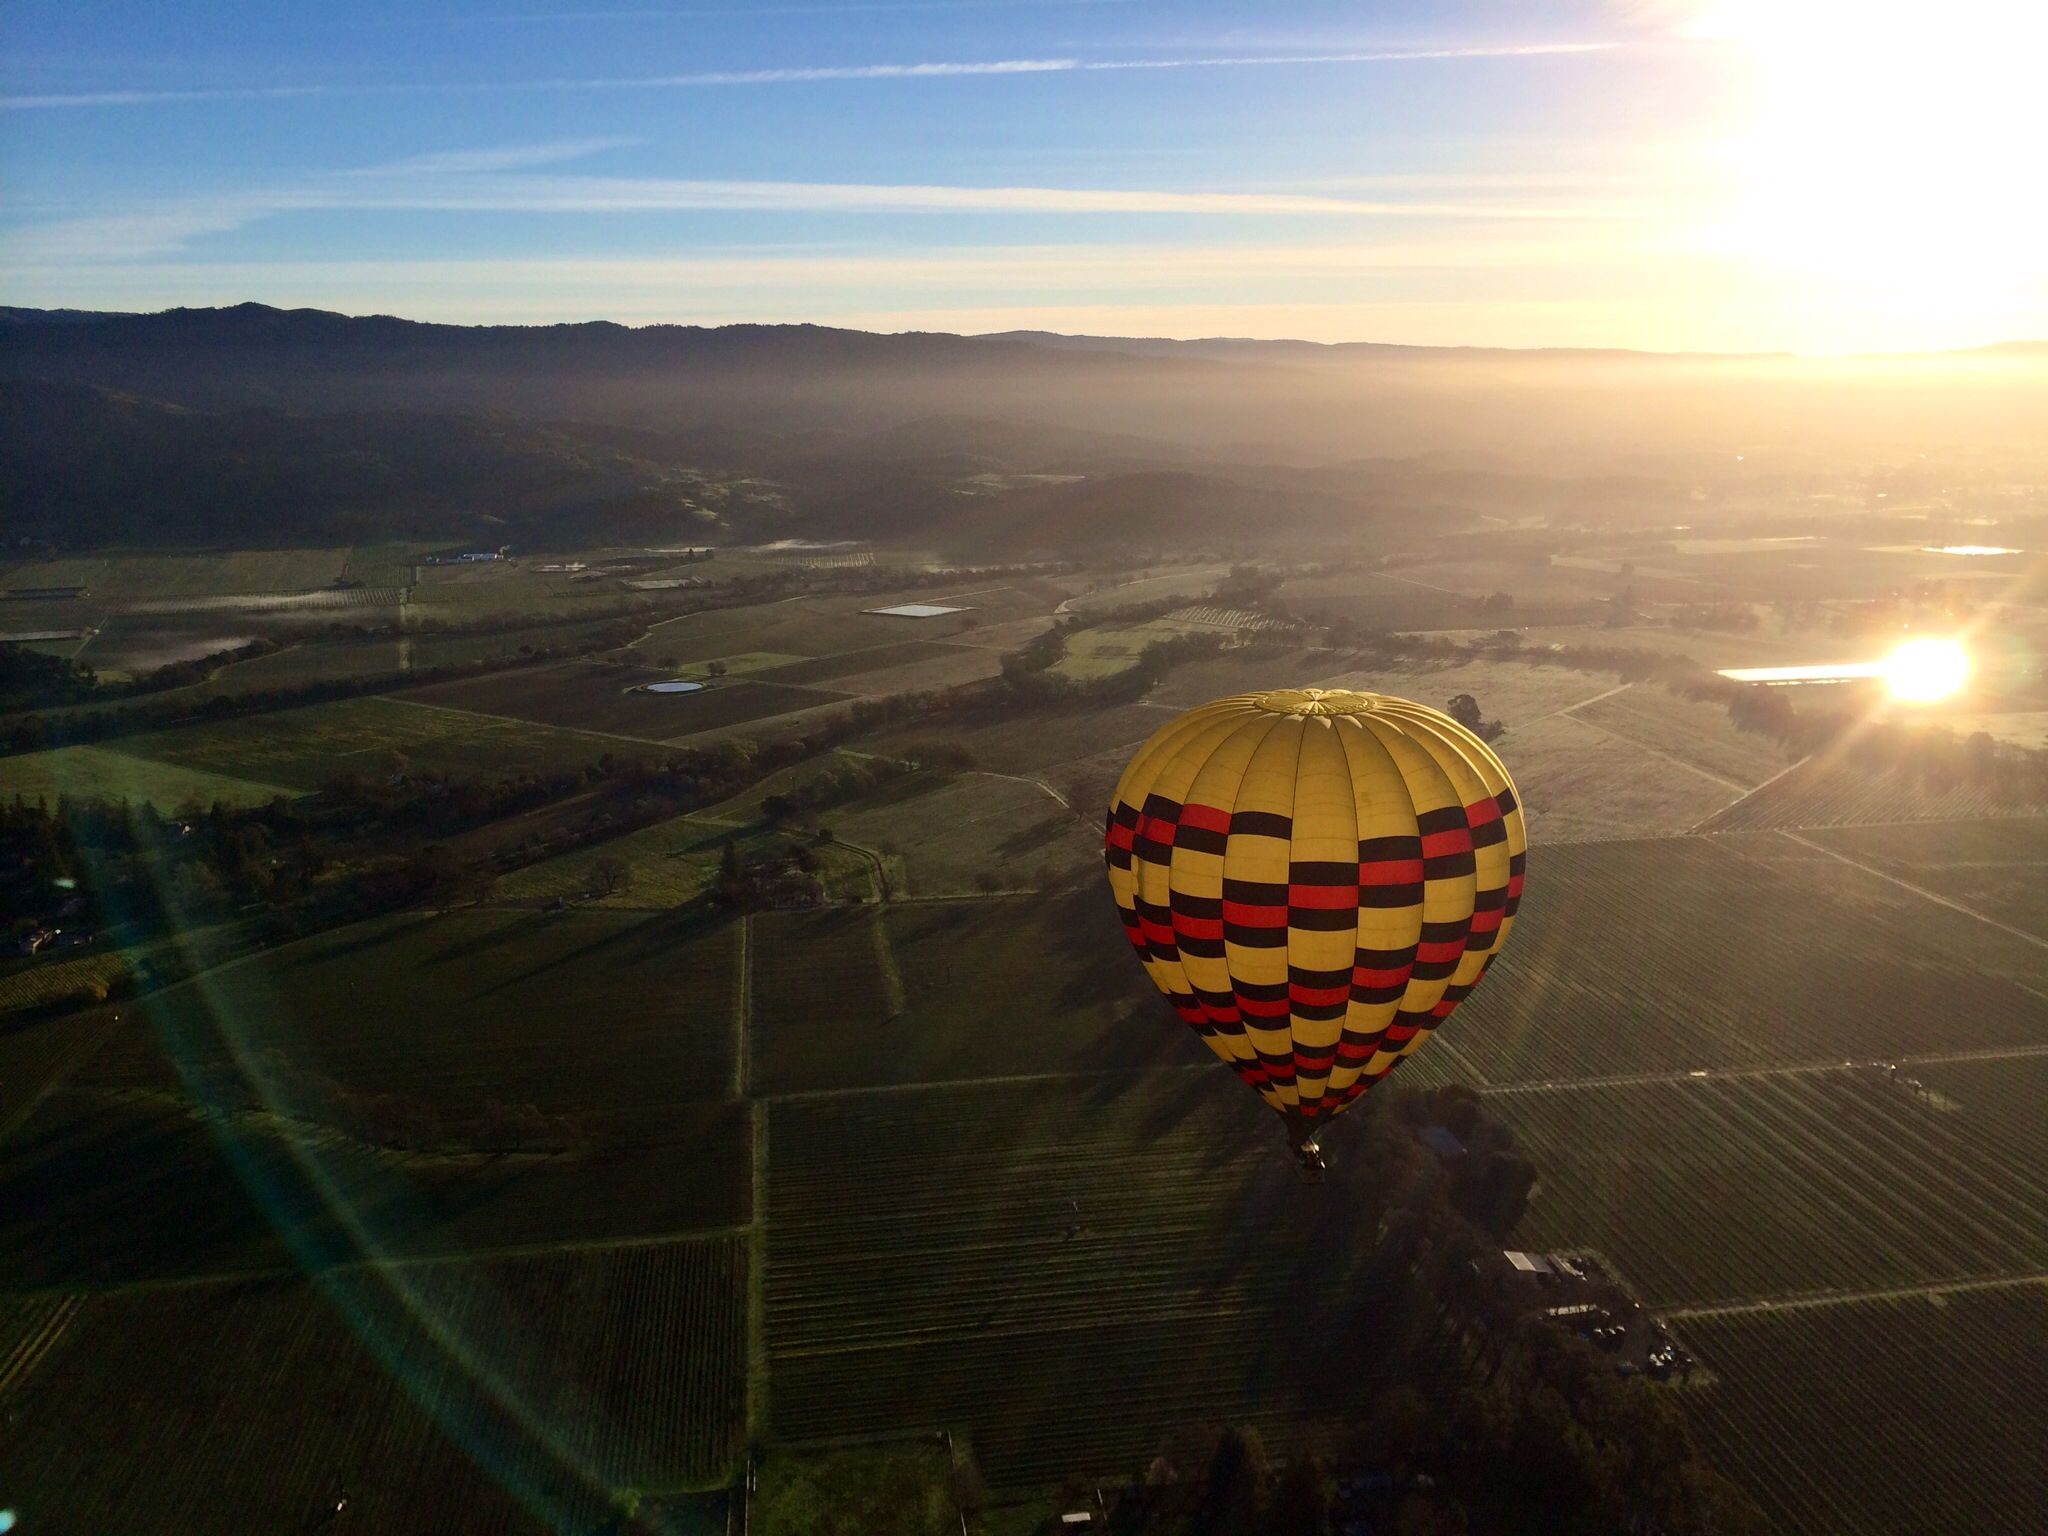 Hot Air Balloon over Napa Valley, CA Napa valley